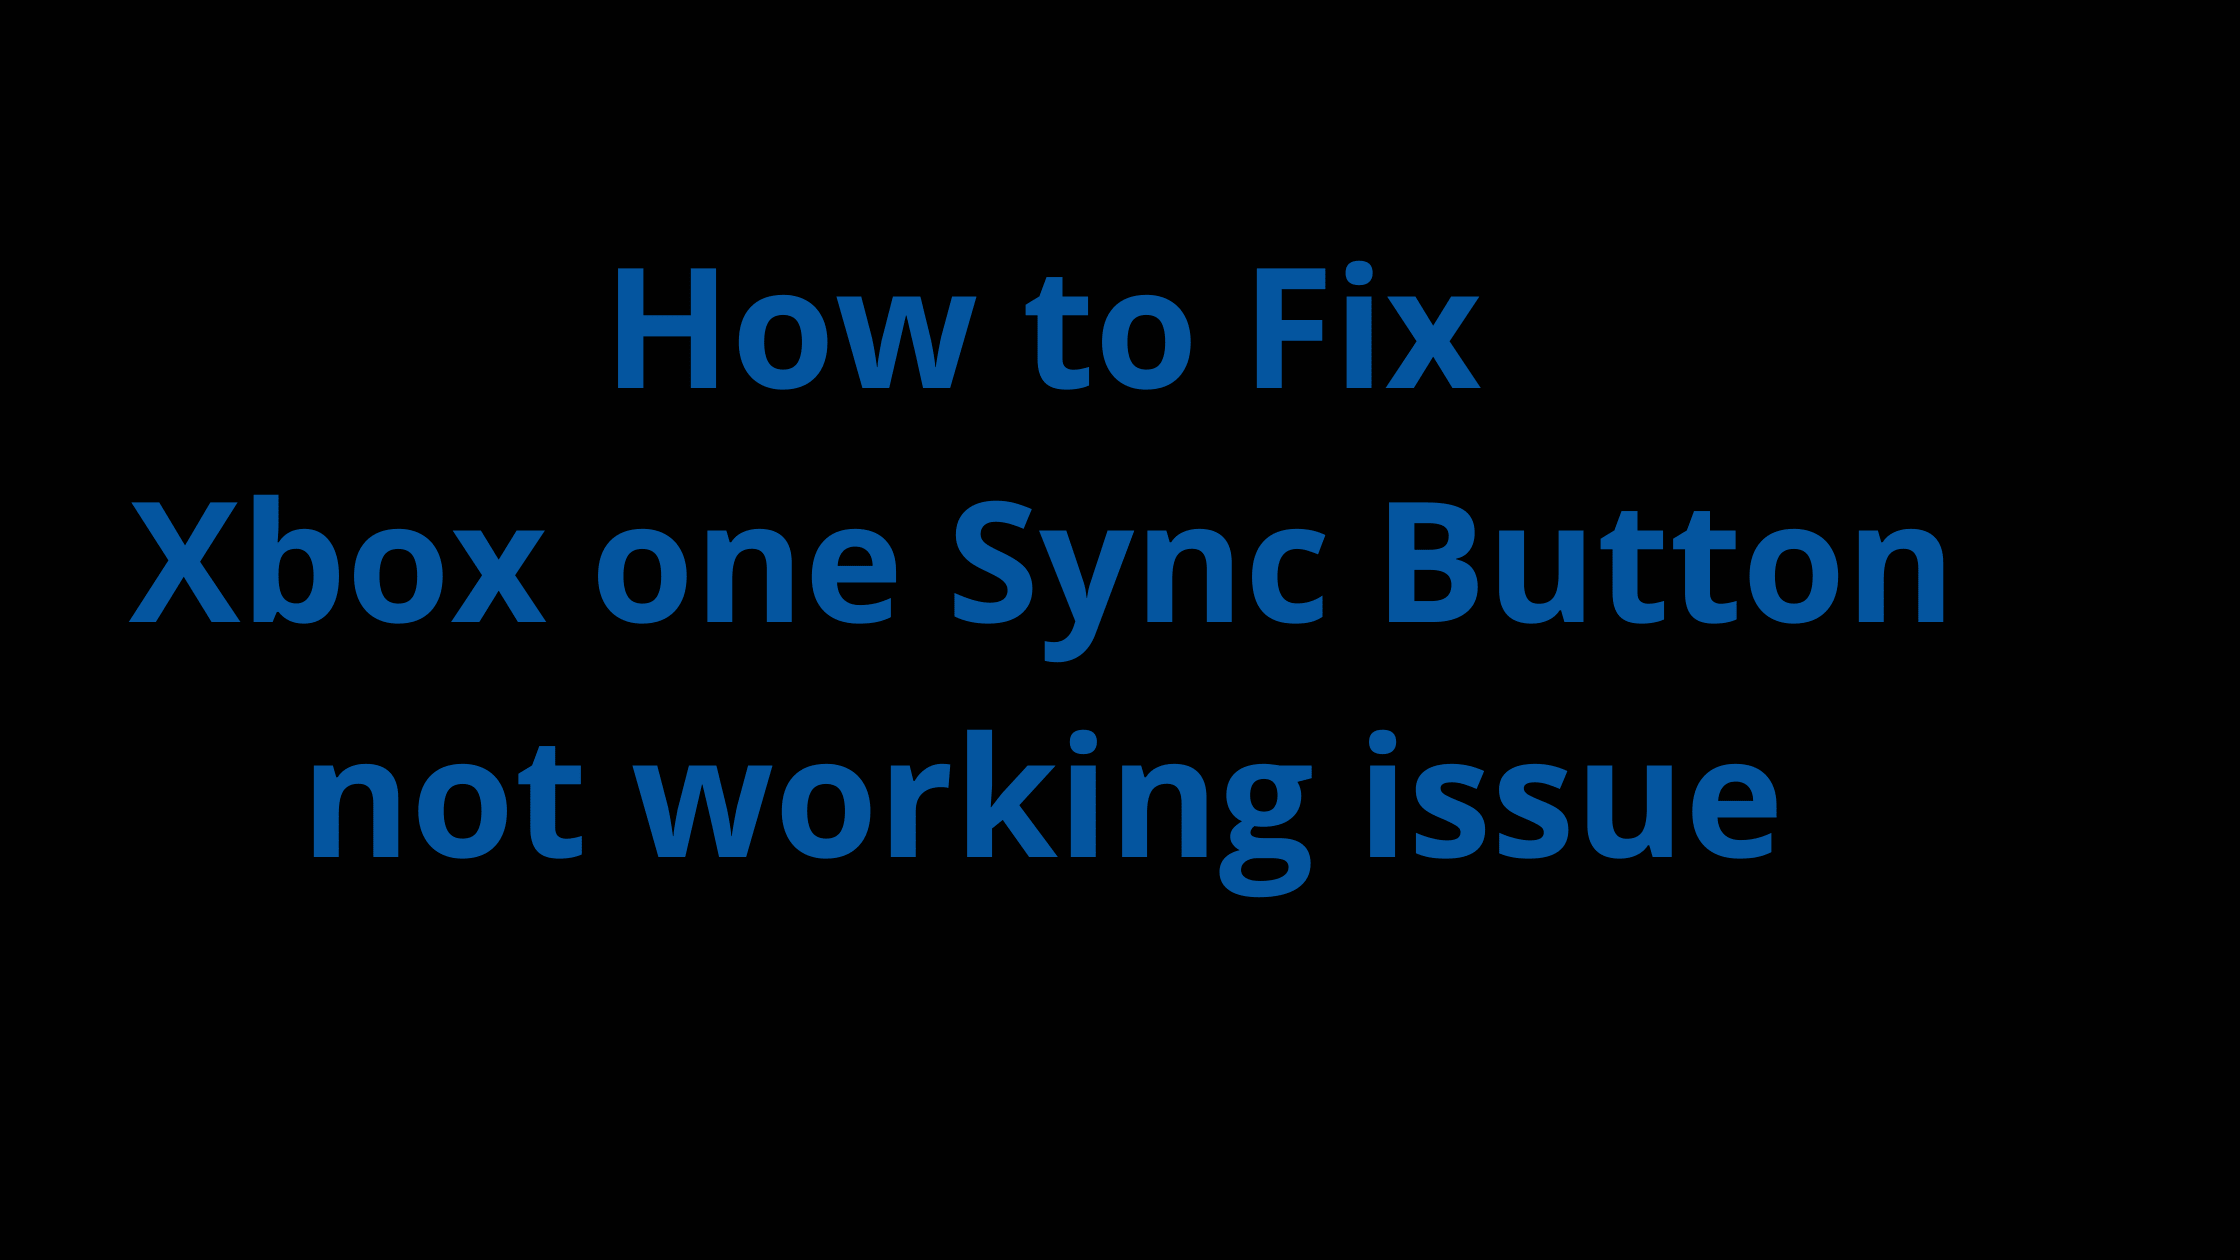 Xbox one Sync button not working